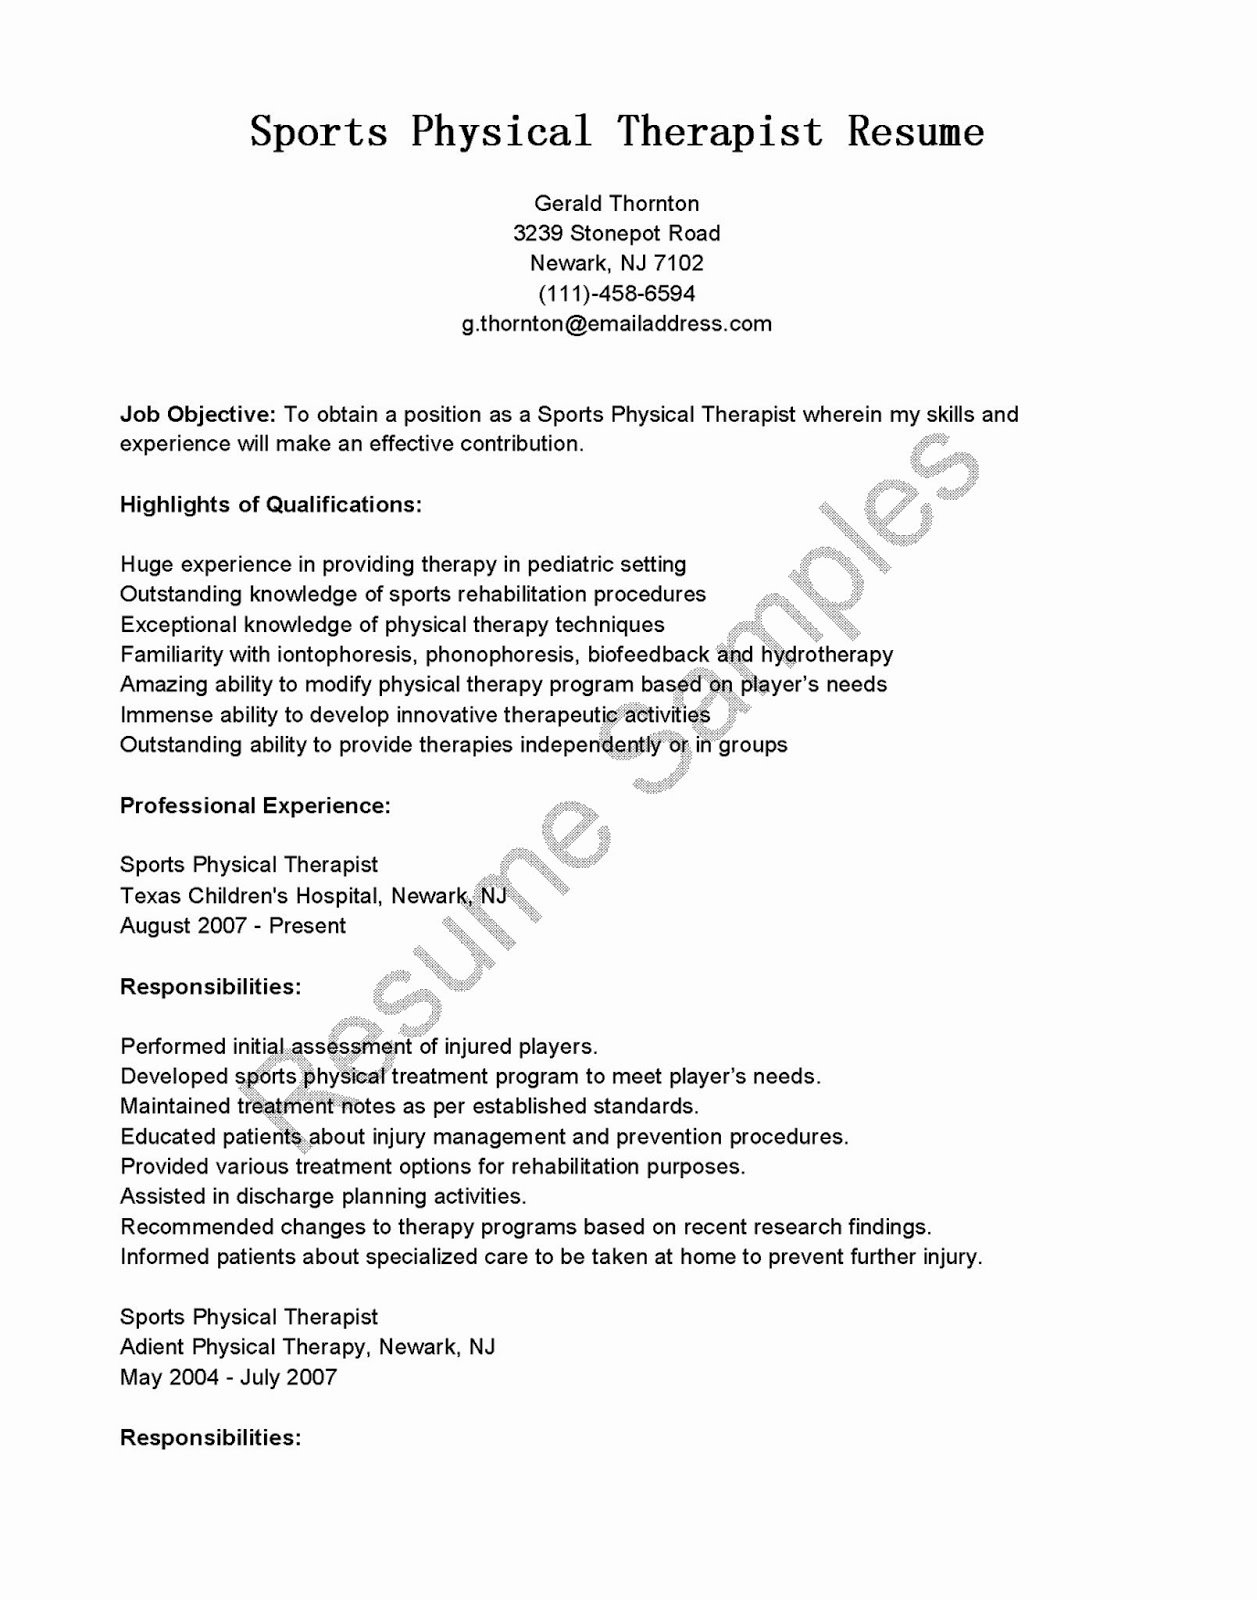 Resume Samples Sports Physical therapist Resume